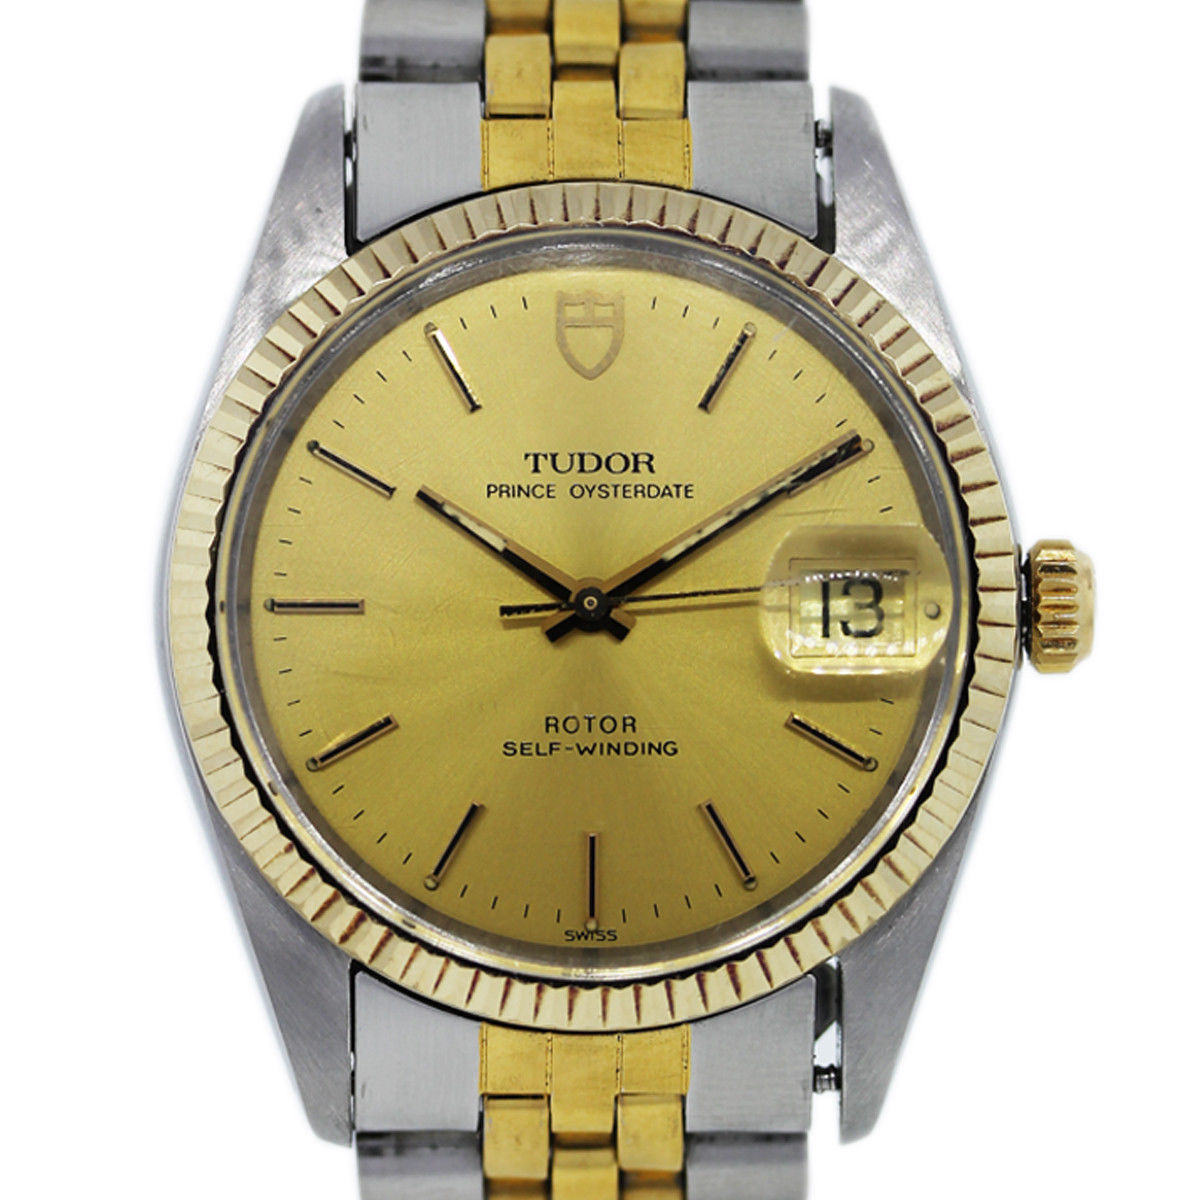 Rolex Tudor Oyster Date Prince 75203 Two Tone Mens Watch